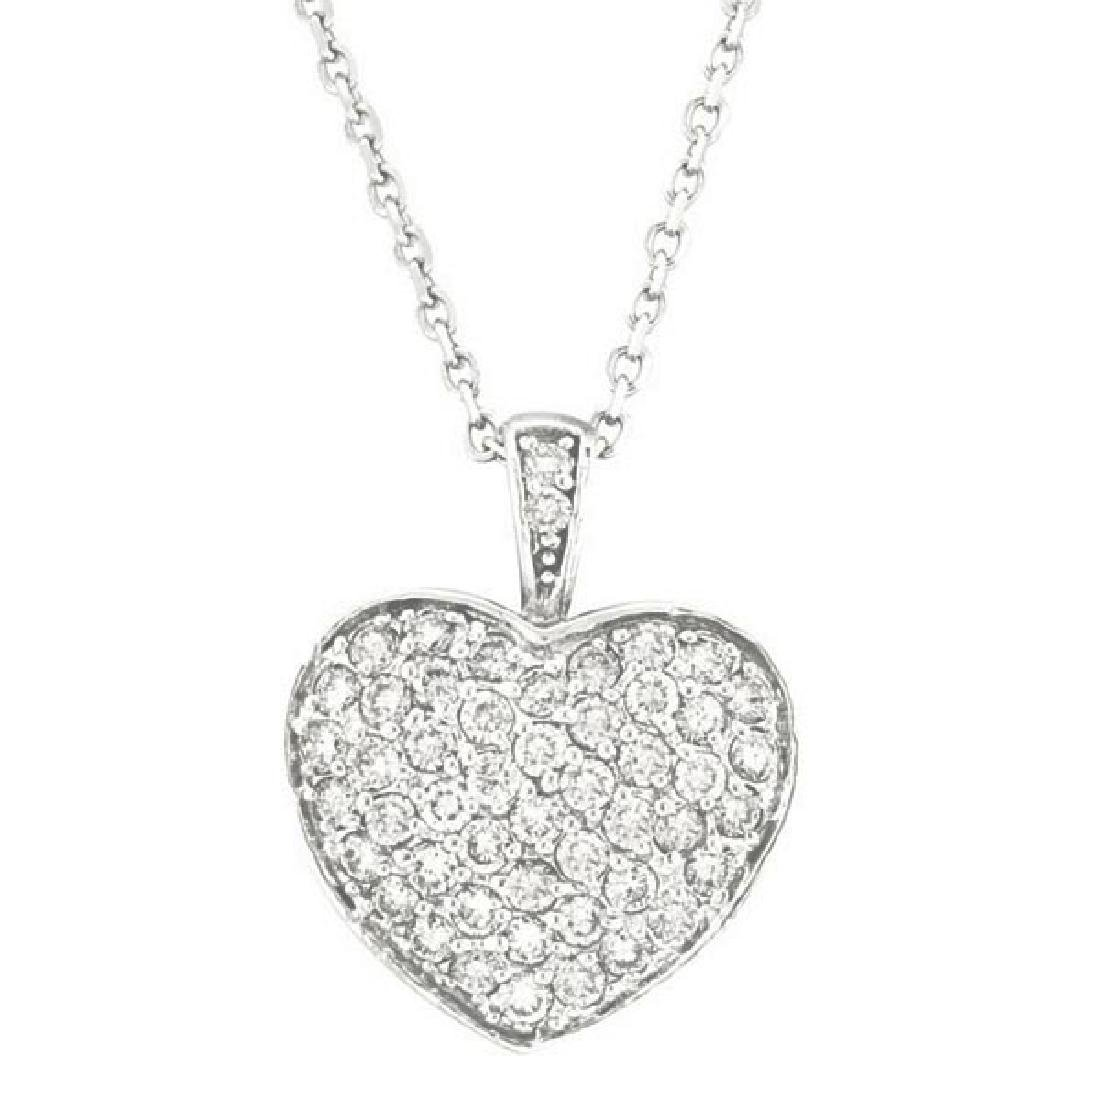 Diamond Puffed Heart Pendant Necklace in 14k White Gold